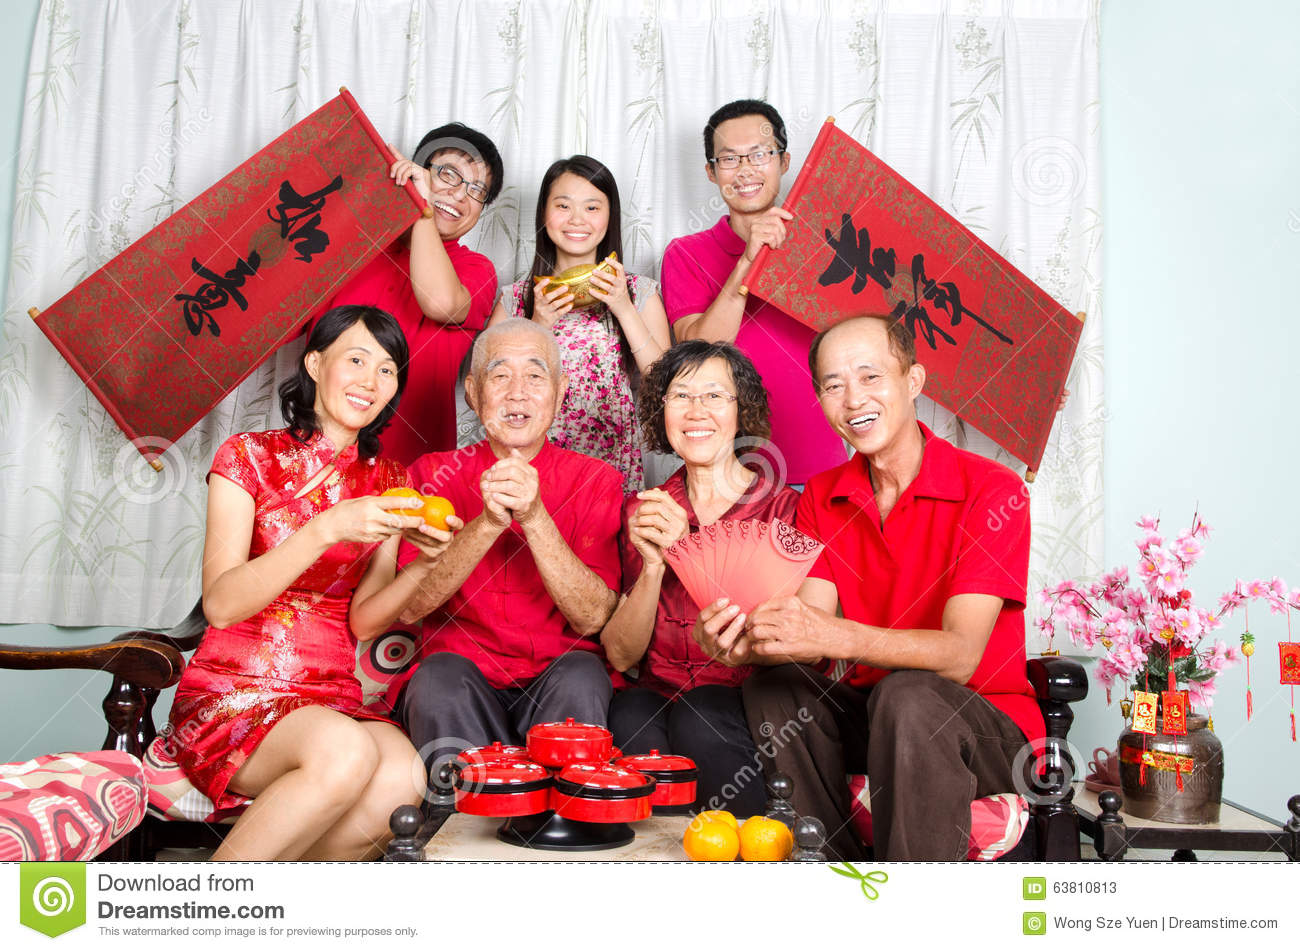 Happy chinese new year stock photo. Image of costume ...